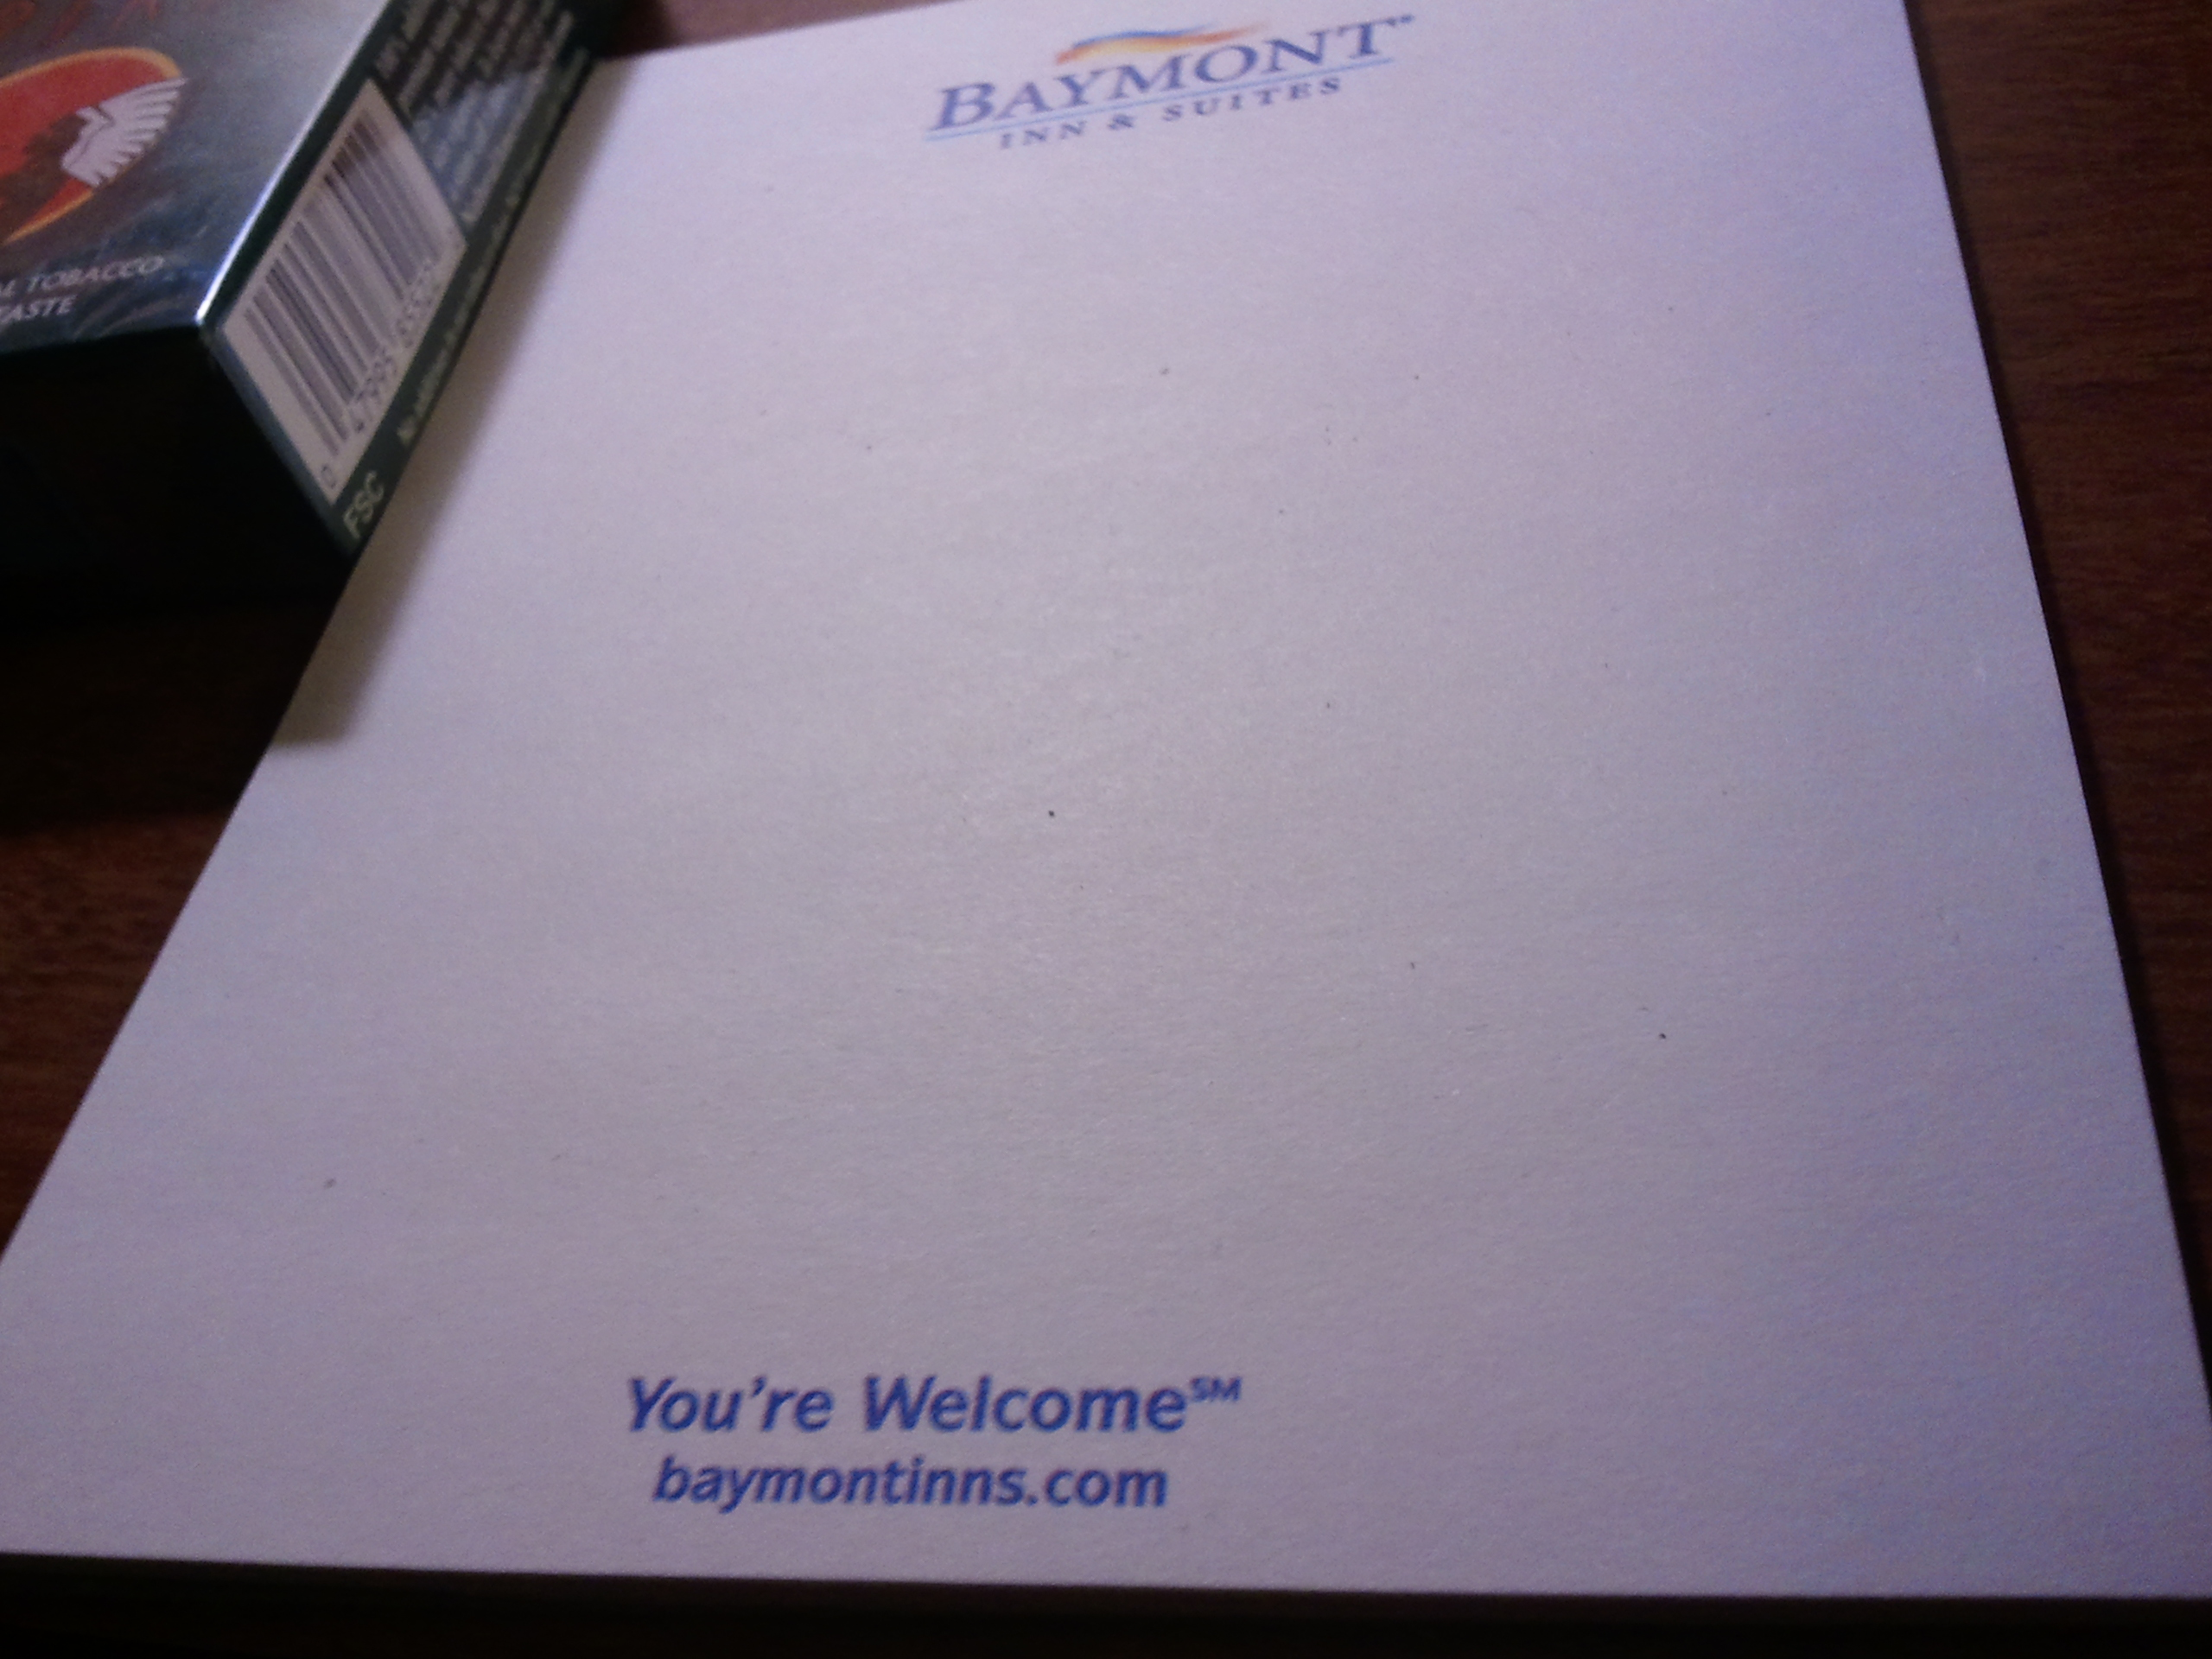 The presumptuous Baymont Inn